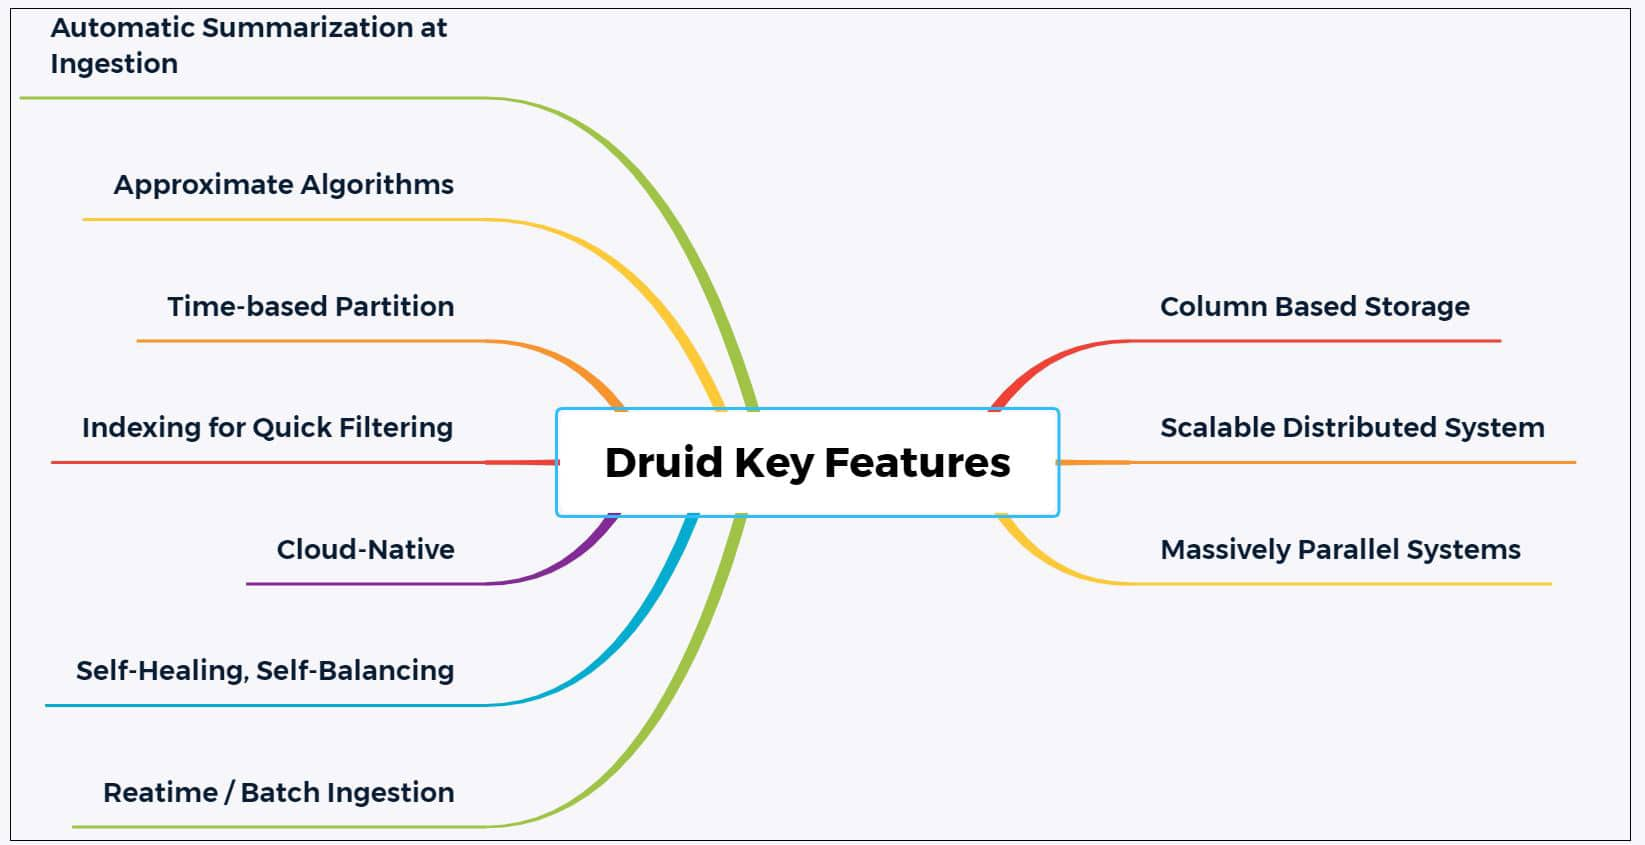 Key features of Druid